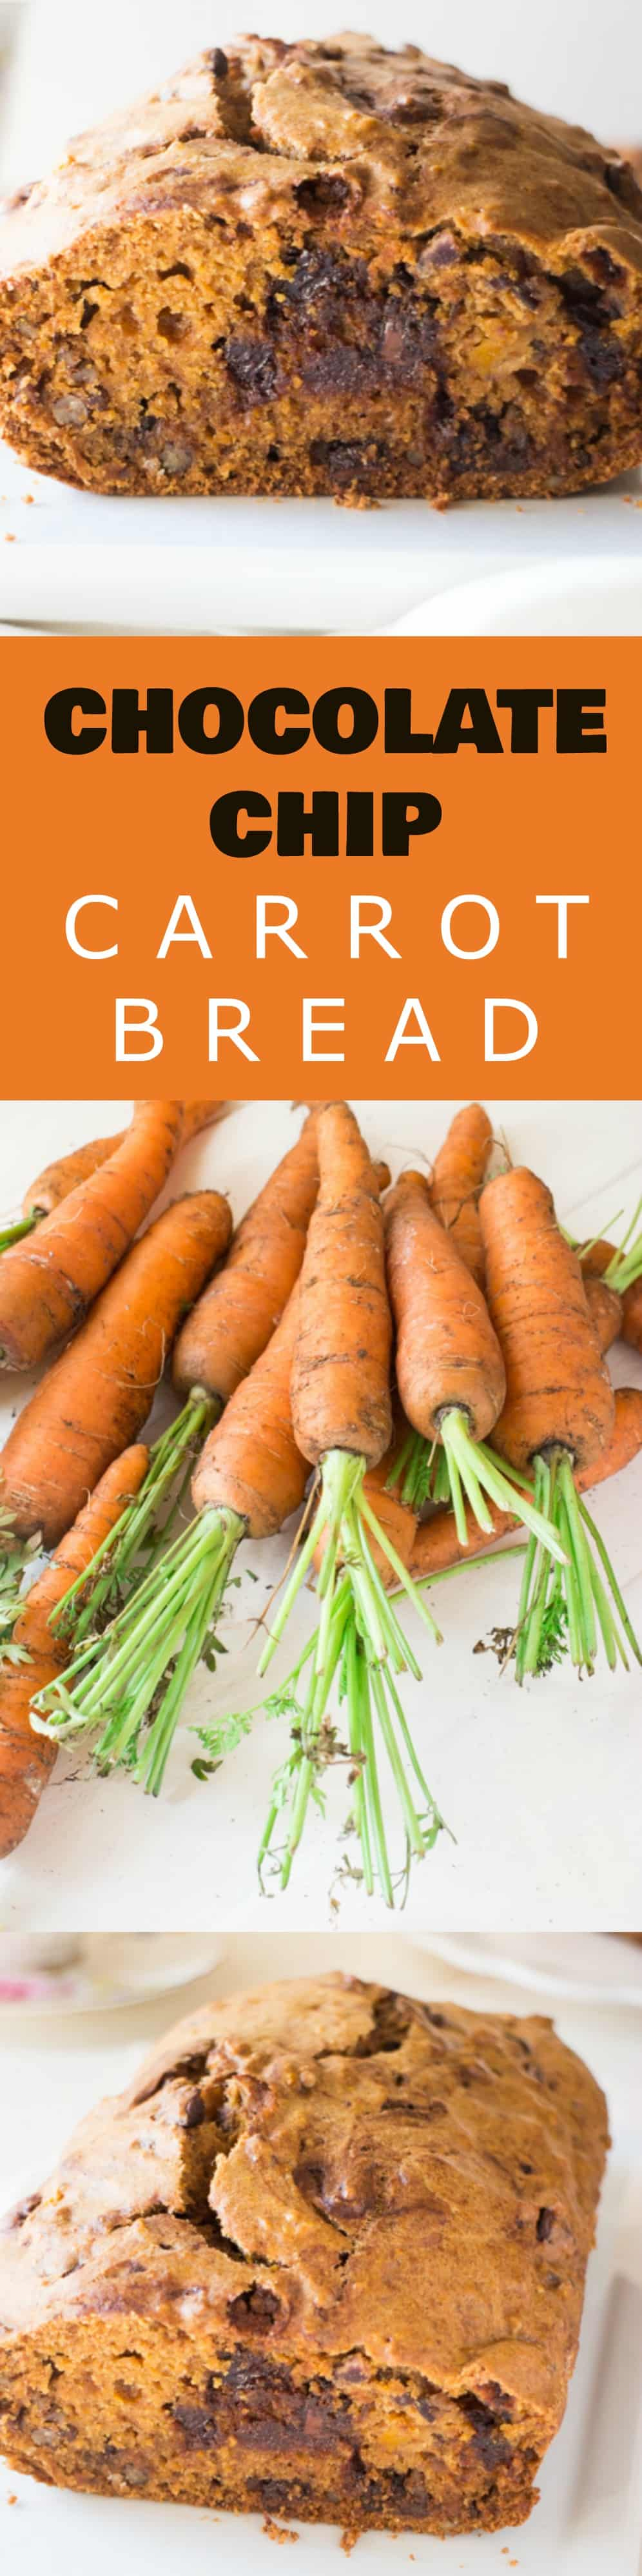 EASY CHOCOLATE CHIP Carrot Bread recipe! This homemade loaf uses fresh carrots and takes 1 hour to bake! The bread tastes just like cake - it's so moist! This is one of my BEST carrot recipes! Serve for breakfast, dessert or snack!